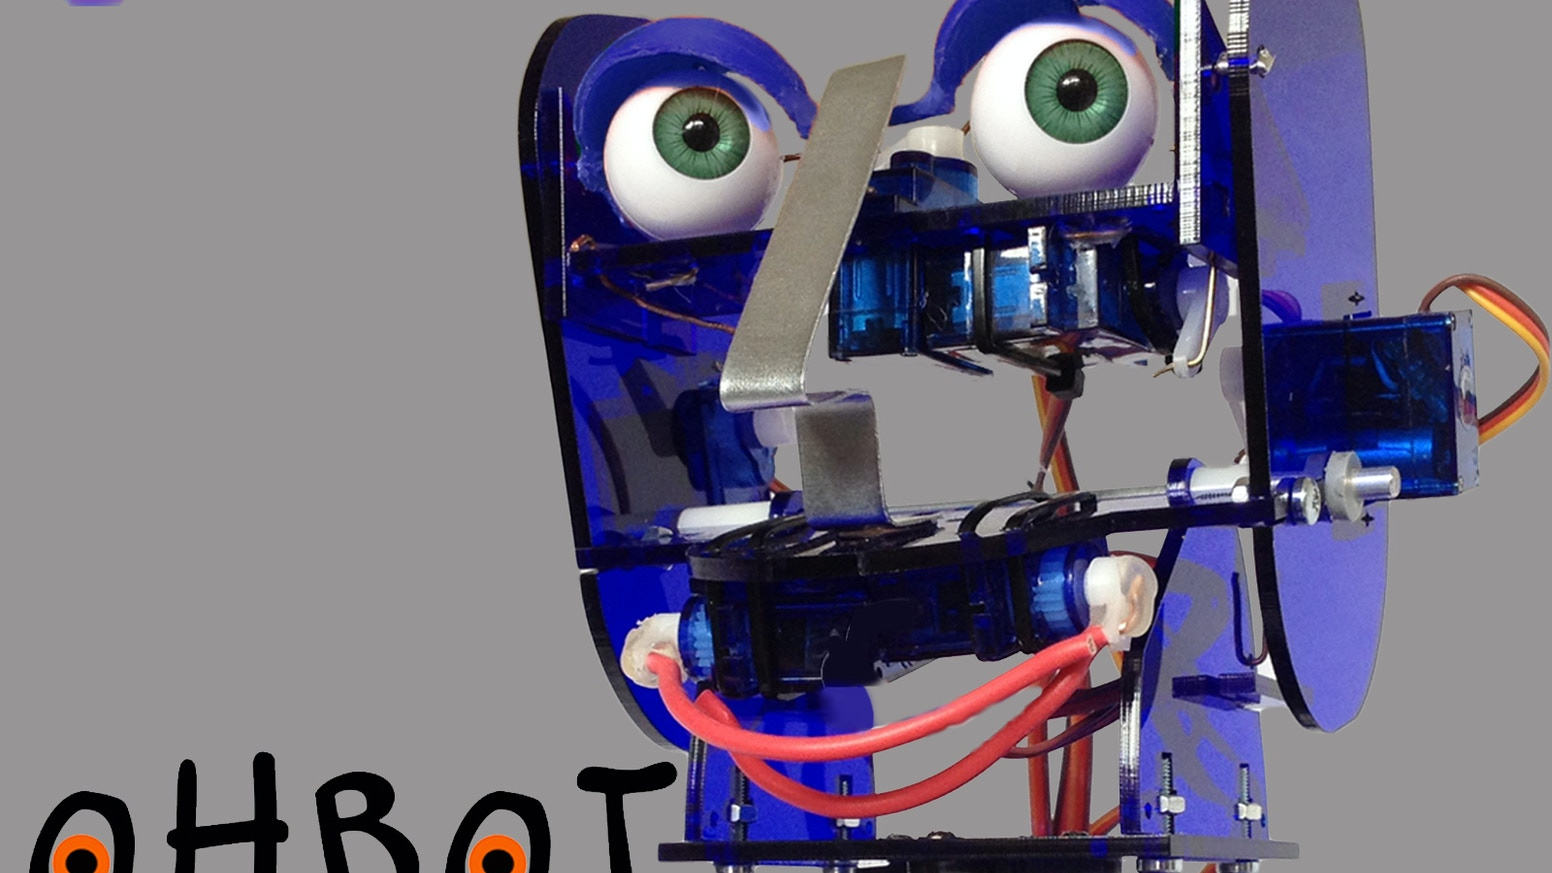 Ohbot2 is an affordable robot and graphical software that works with your PC.  It comes with an Arduino-compatible servo controller